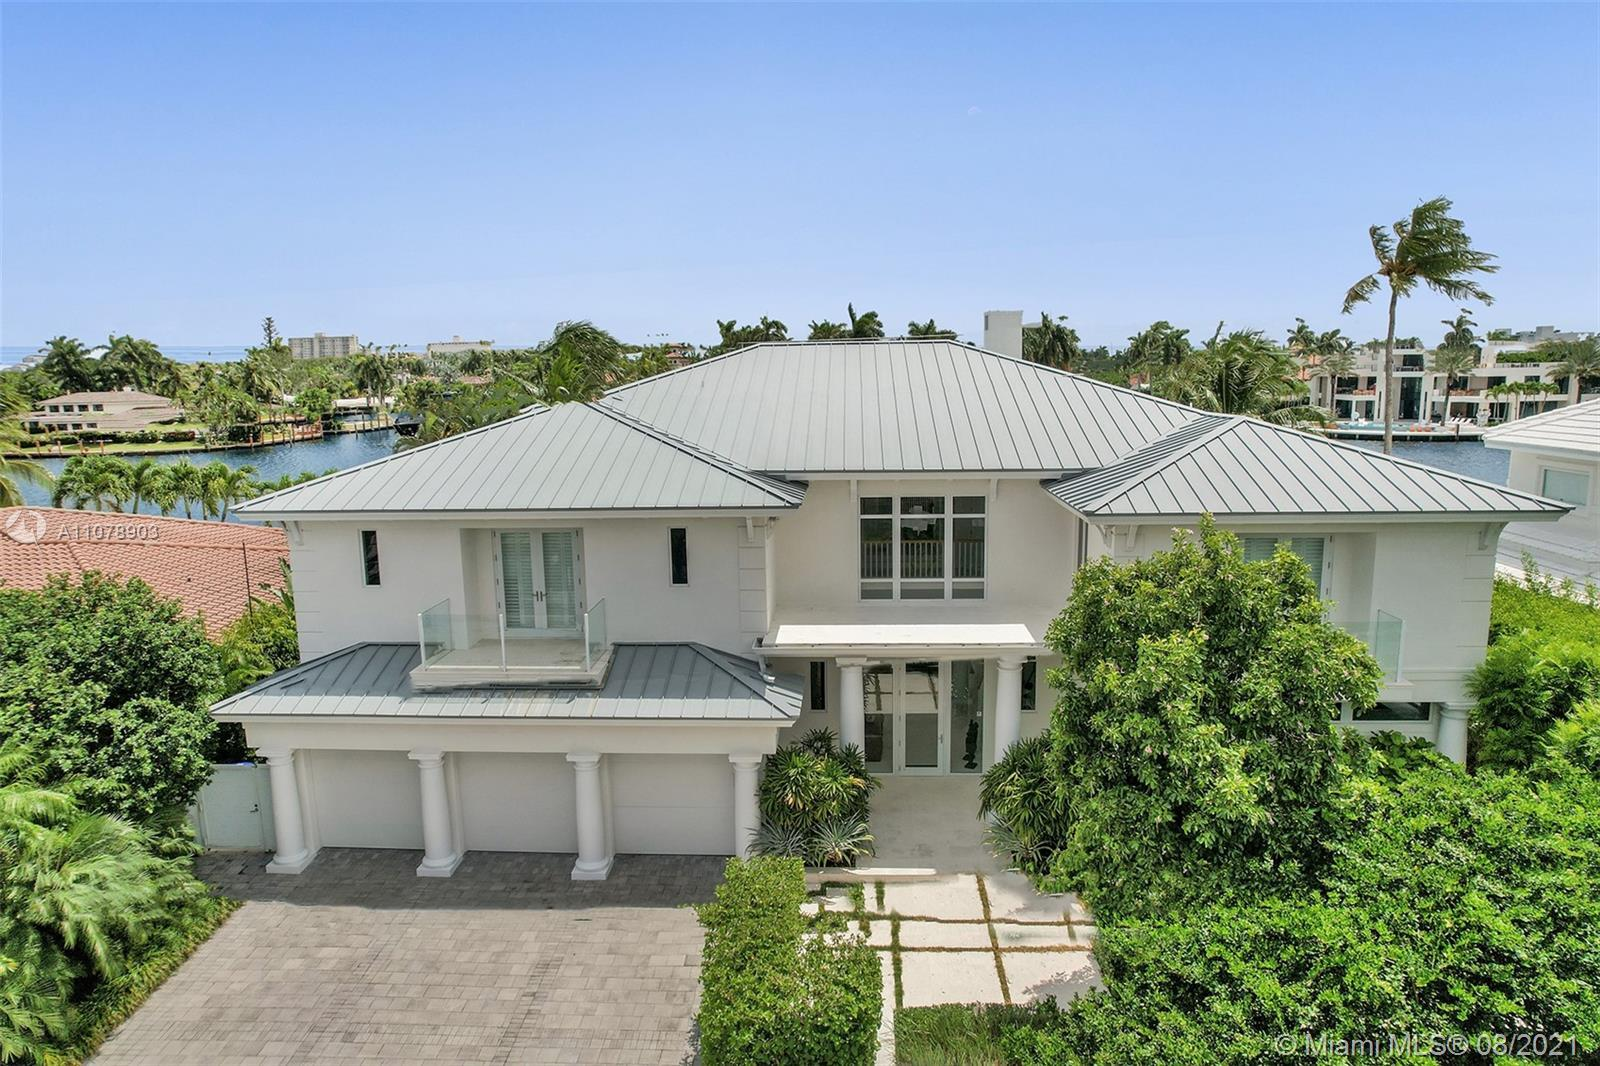 Stunning waterfront estate located in the unique island community of Sunrise Key consisting of 75 si